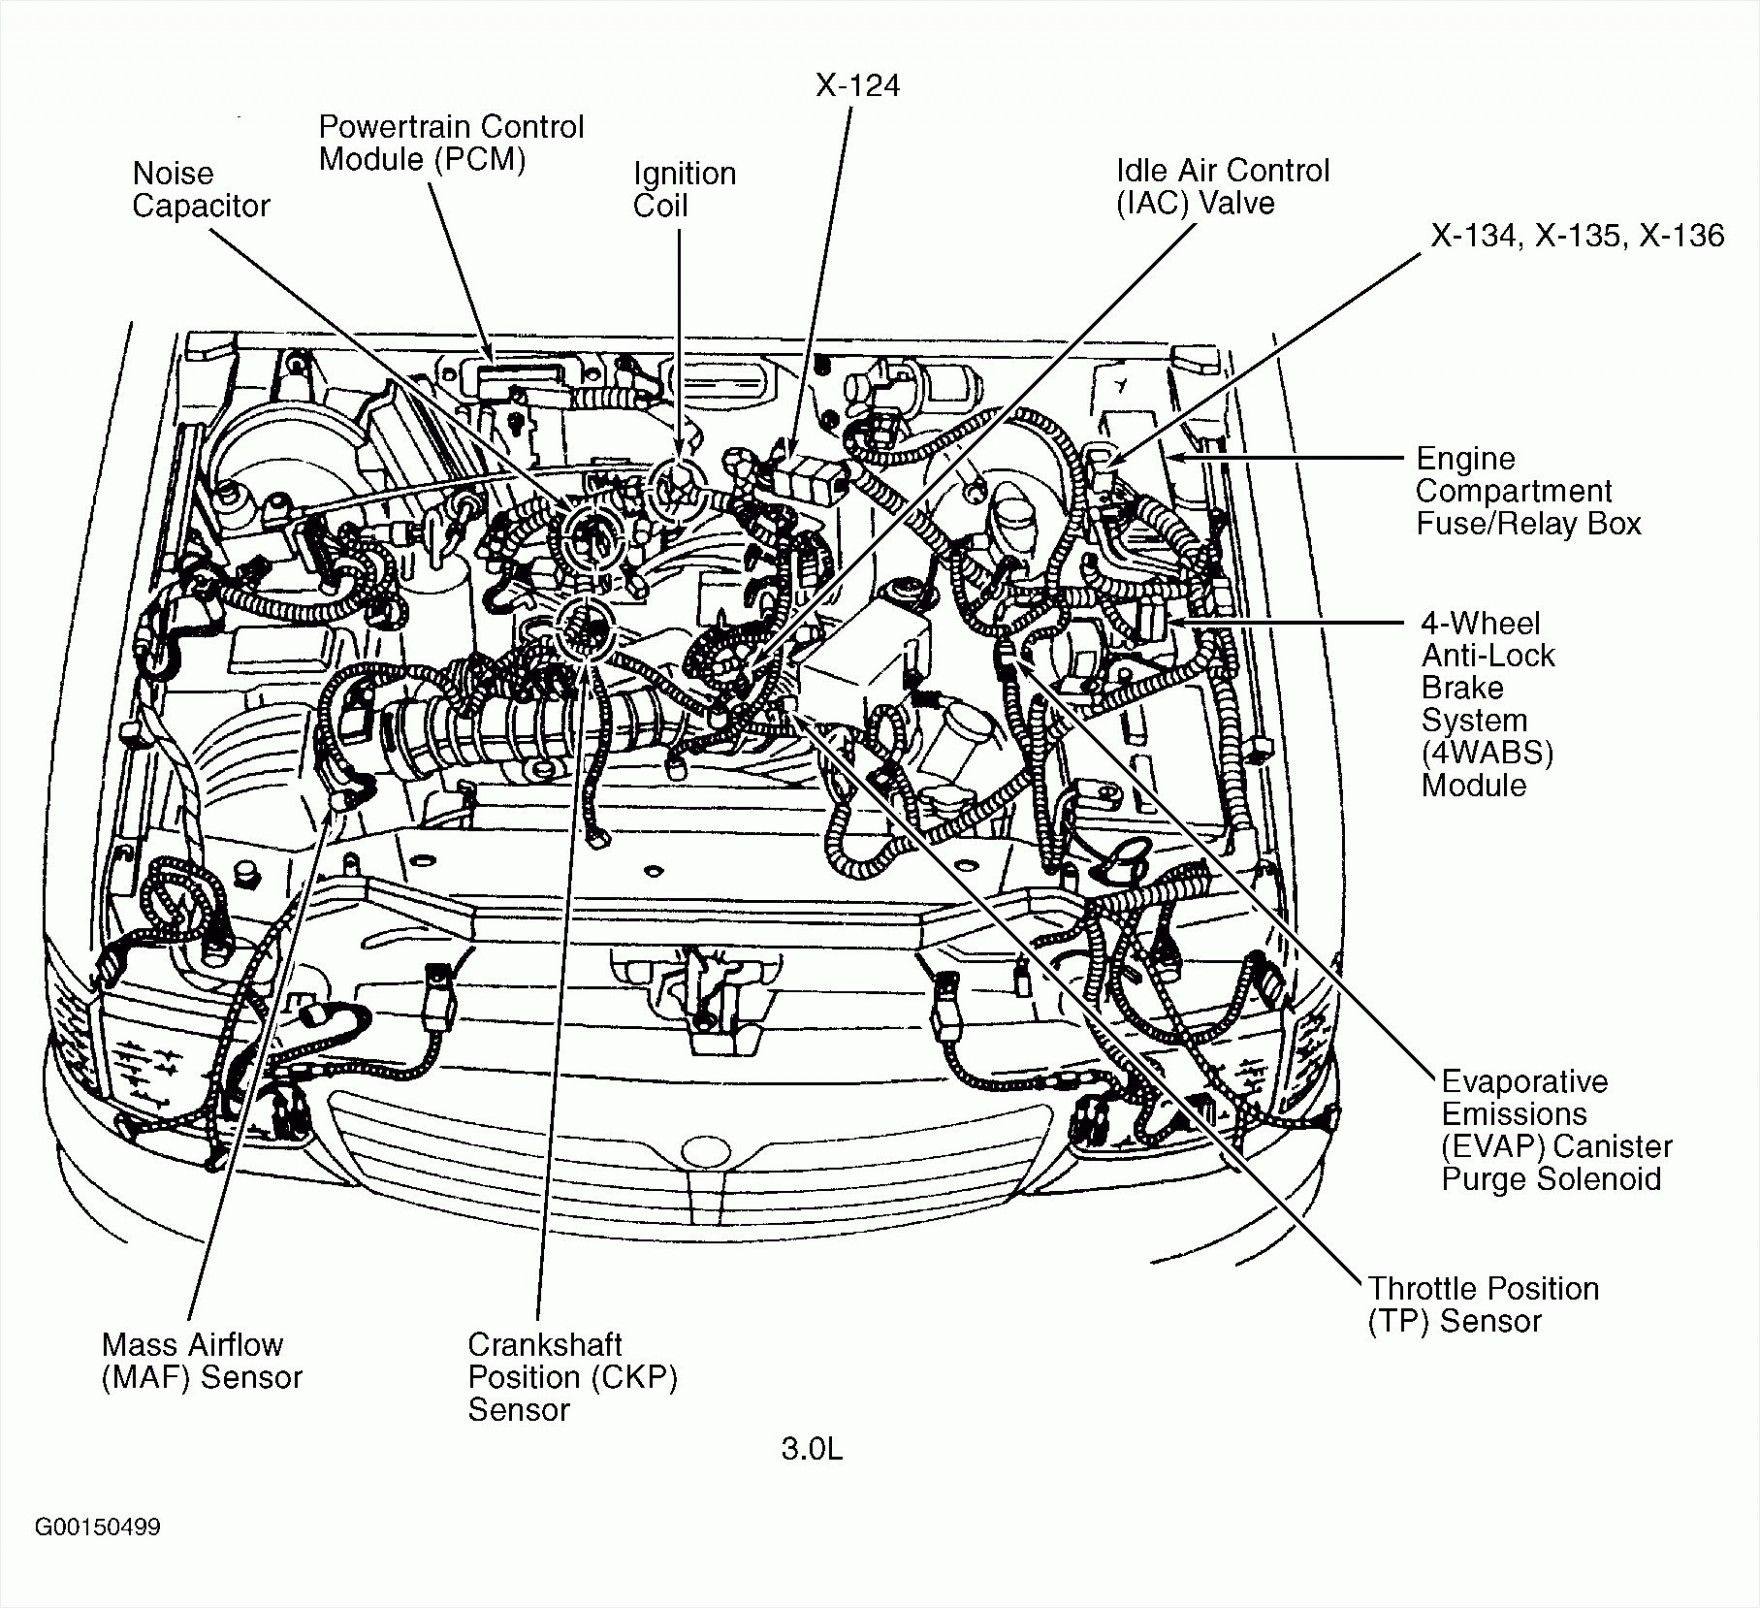 Audi B5 S4 Engine Bay Diagram - wiring diagram circuit-select -  circuit-select.siamocampobasso.it | Audi S4 Engine Diagram |  | siamocampobasso.it